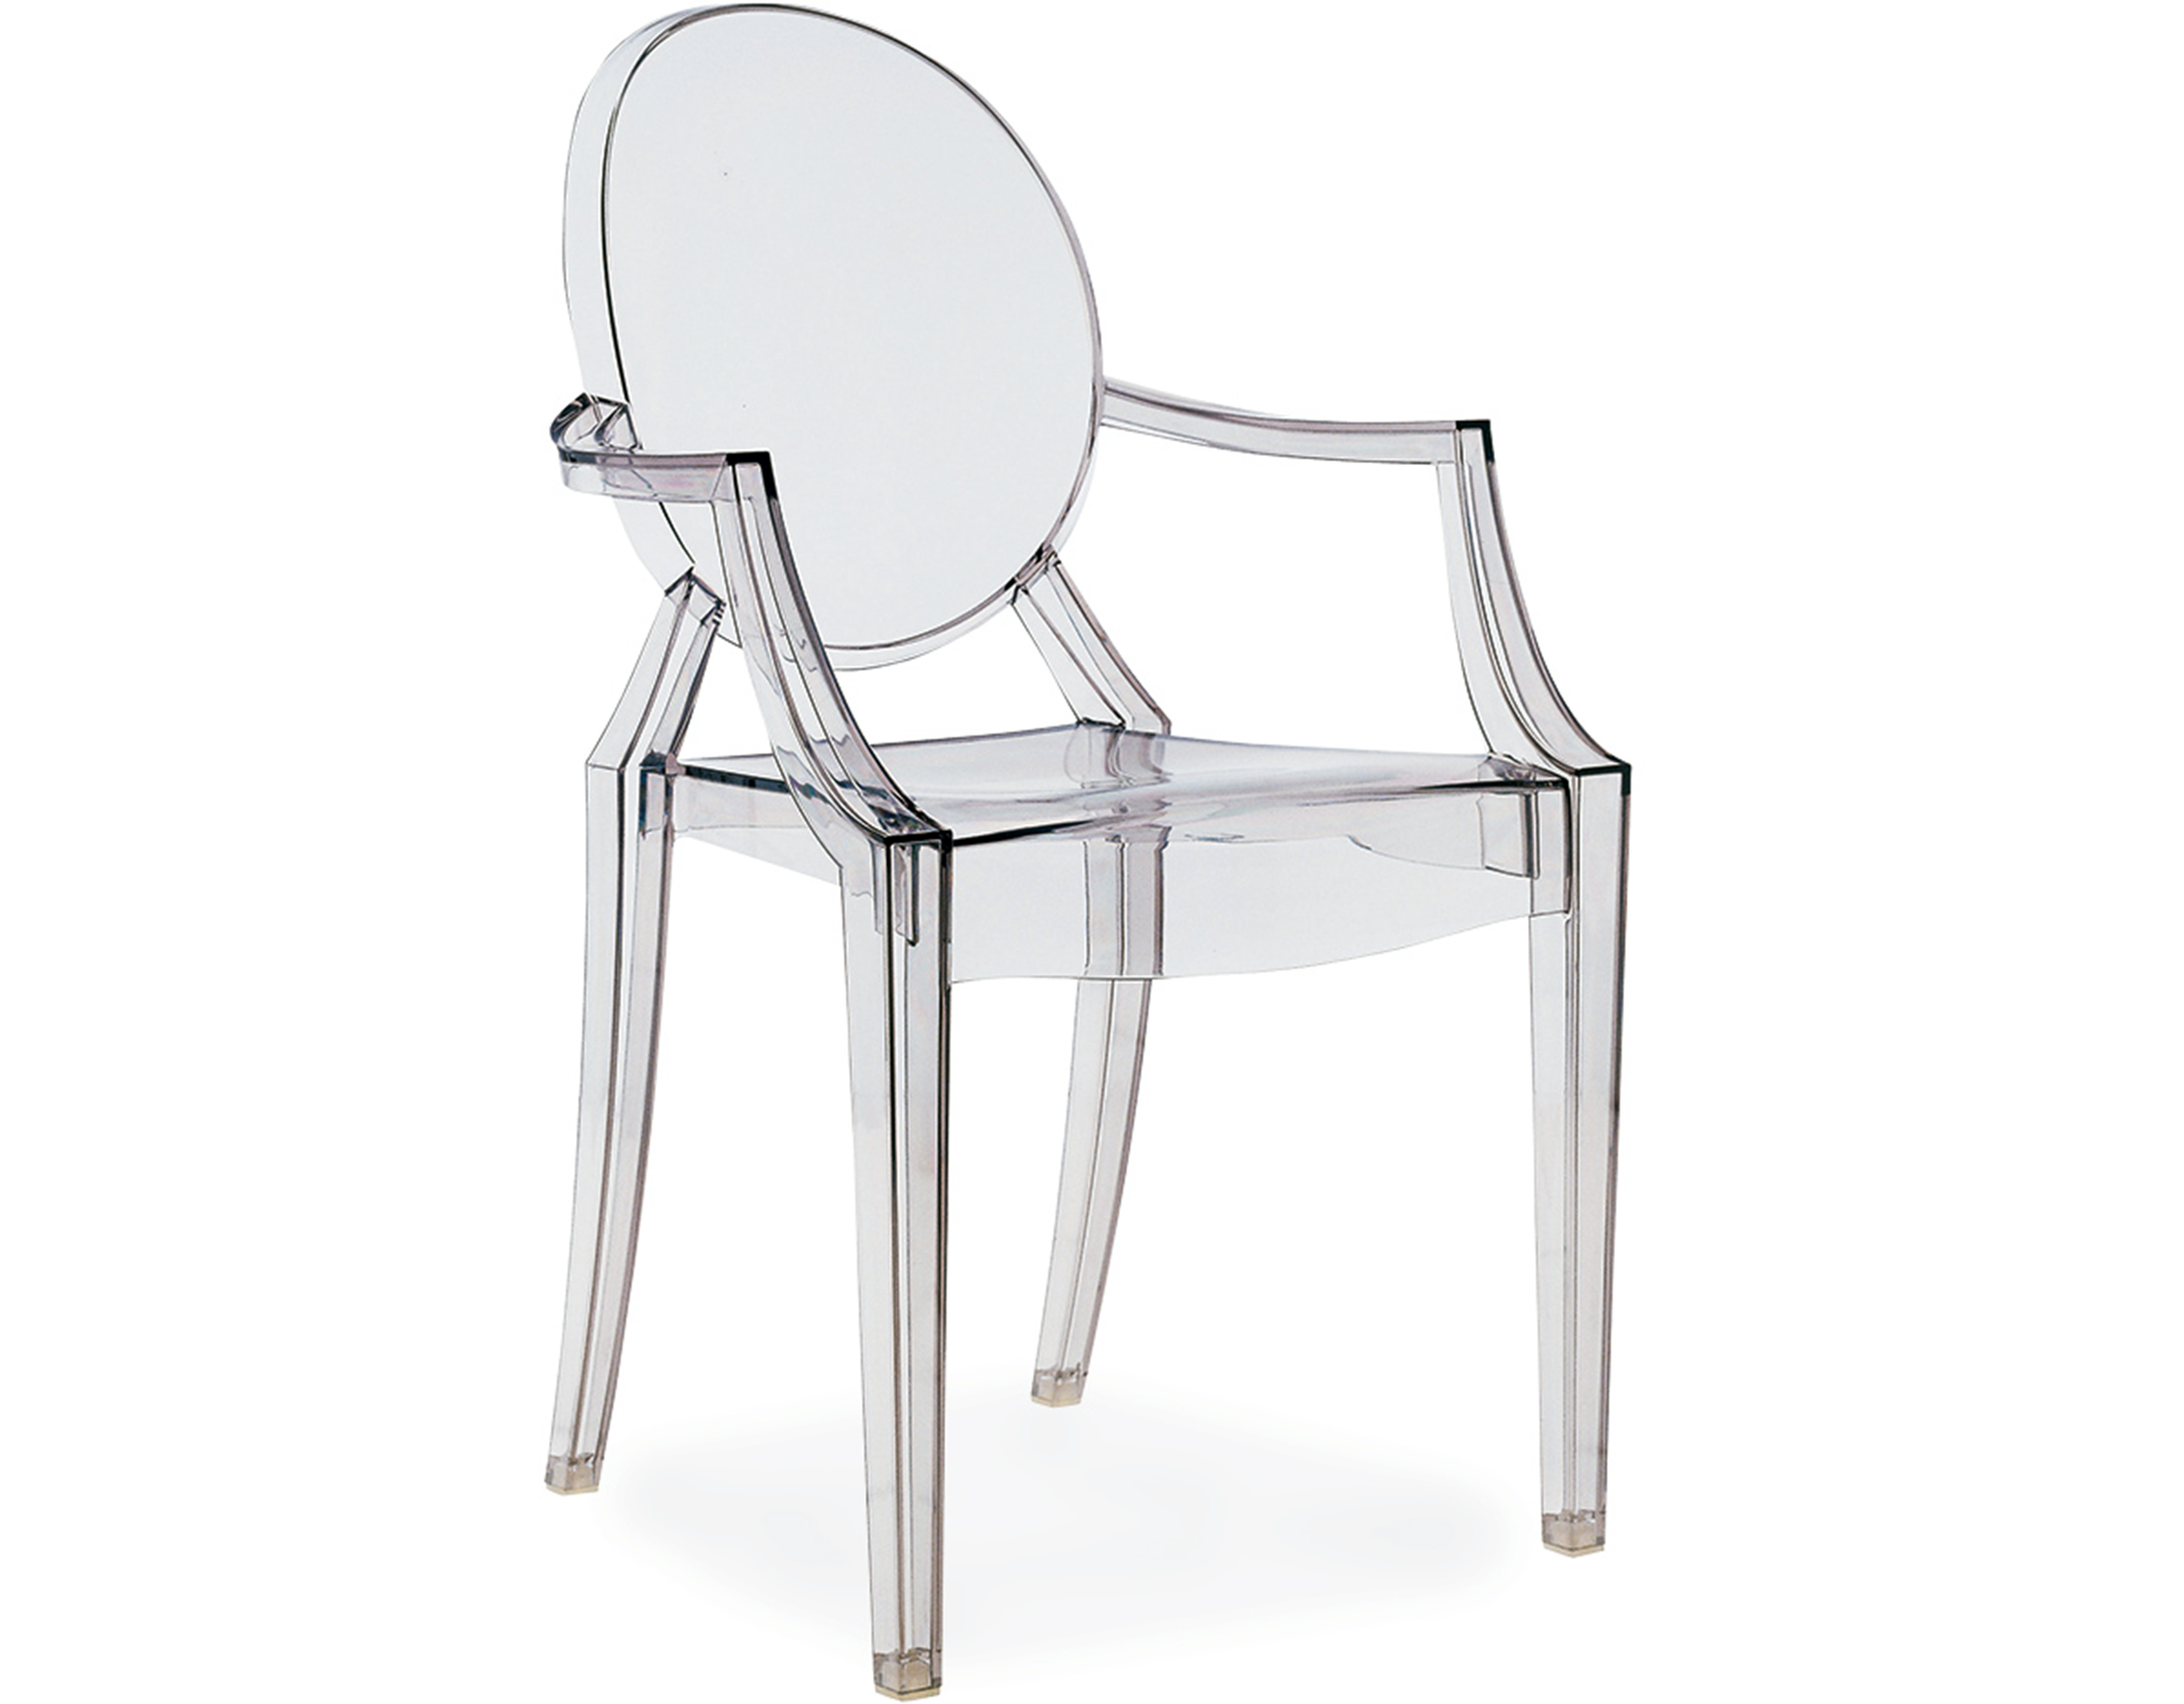 designapplause louis ghost chair philippe starck. Black Bedroom Furniture Sets. Home Design Ideas